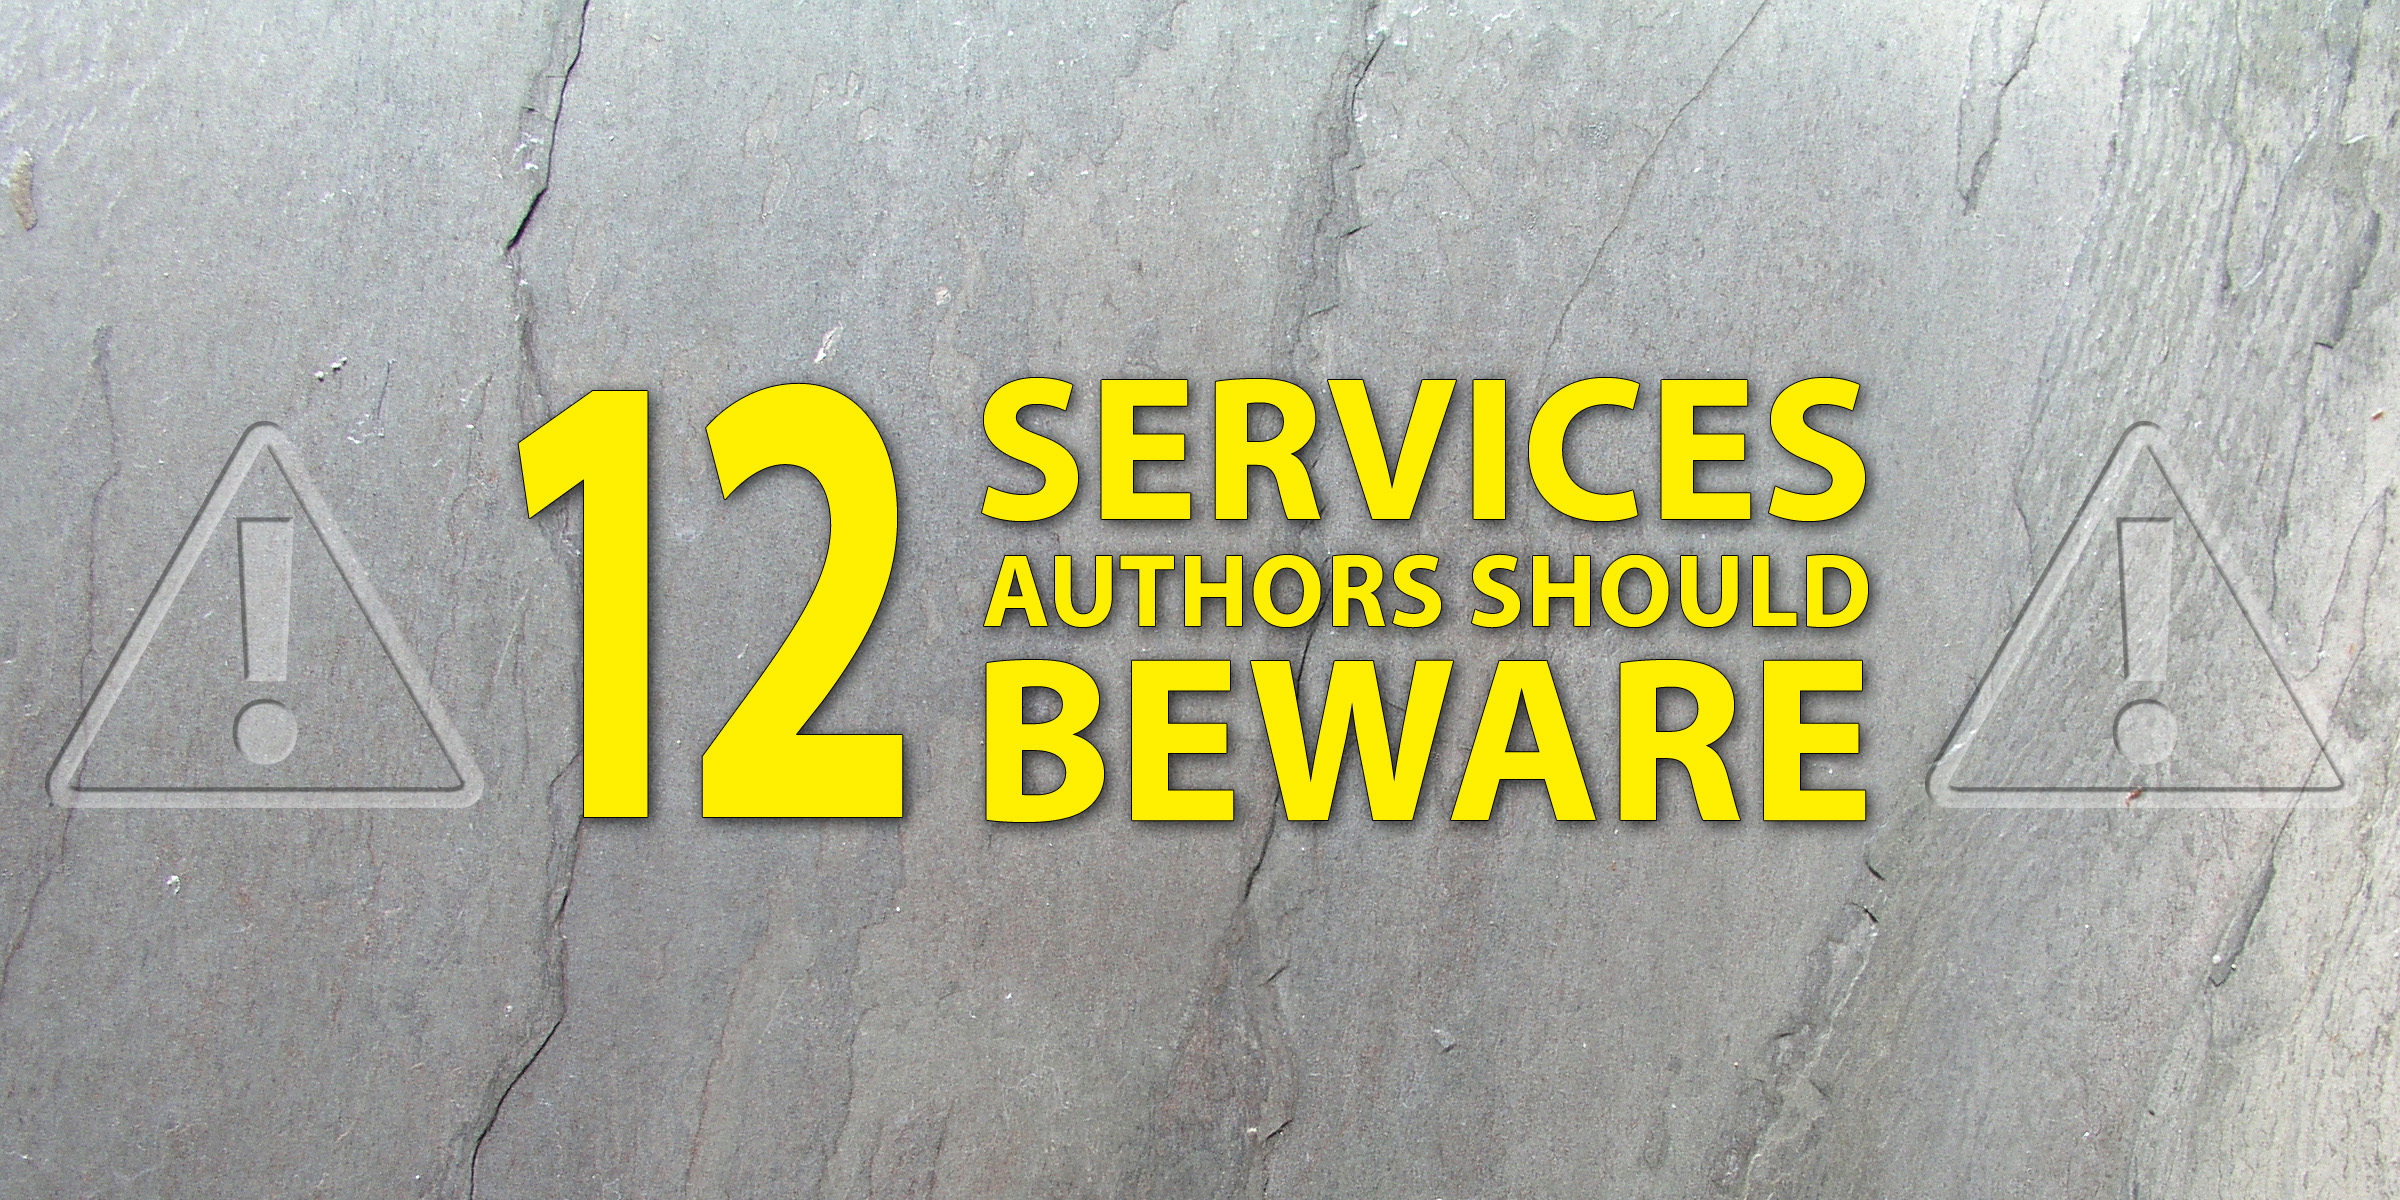 Title: 12 Services Authors Should Beware